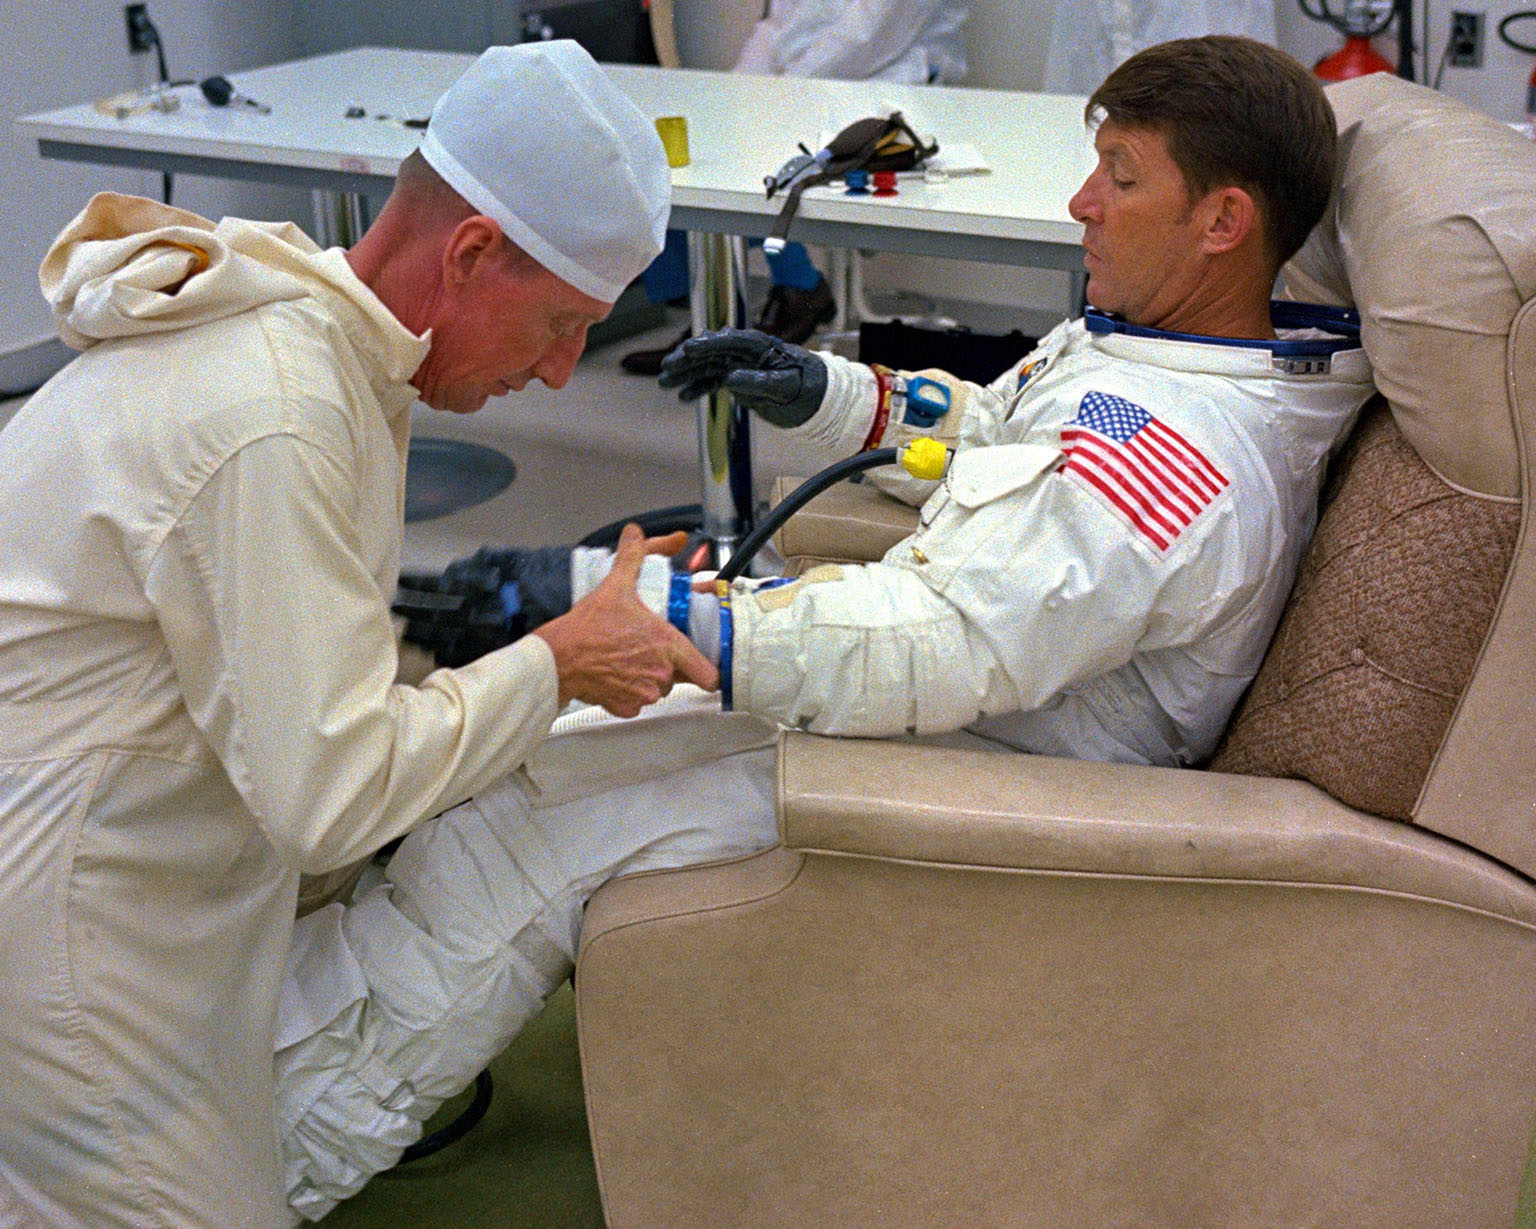 KENNEDY SPACE CENTER, FLA. - Spacesuit technician Clyde Teague adjusts the gloves on Apollo 7 Commander Walter M. Schirra Jr., during suiting operations. Astronaut Schirra, along with Command Module Pilot Donn F. Eisele, and Lunar Module Pilot Walter Cunningham, after being suited up, will depart for Launch Pad 34 and board their Saturn 1B rocket for the first manned lunar orbital mission. .